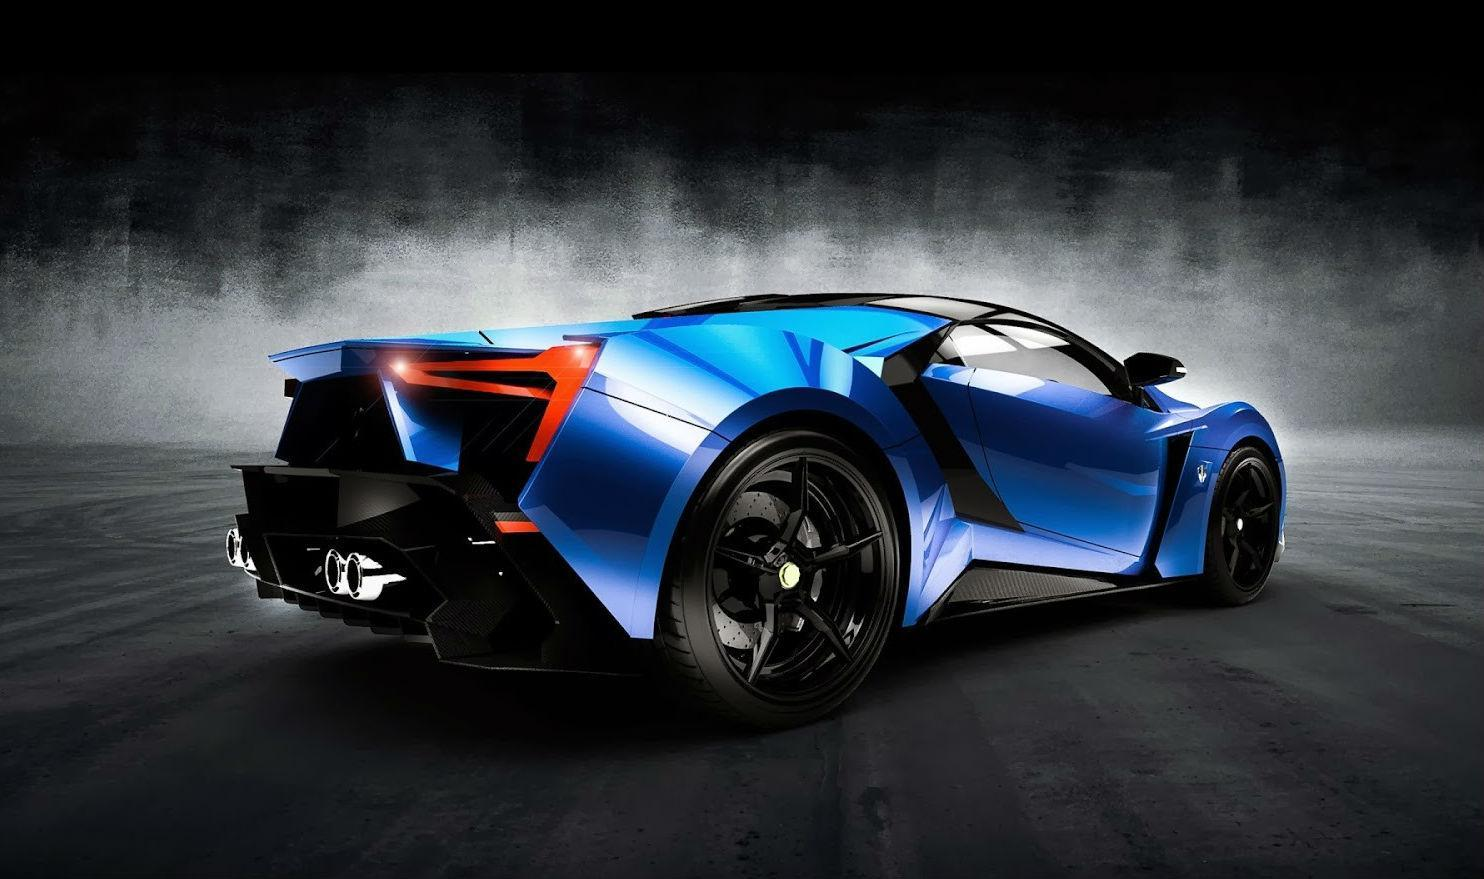 3d Wallpapers Cars For Android Apk Download